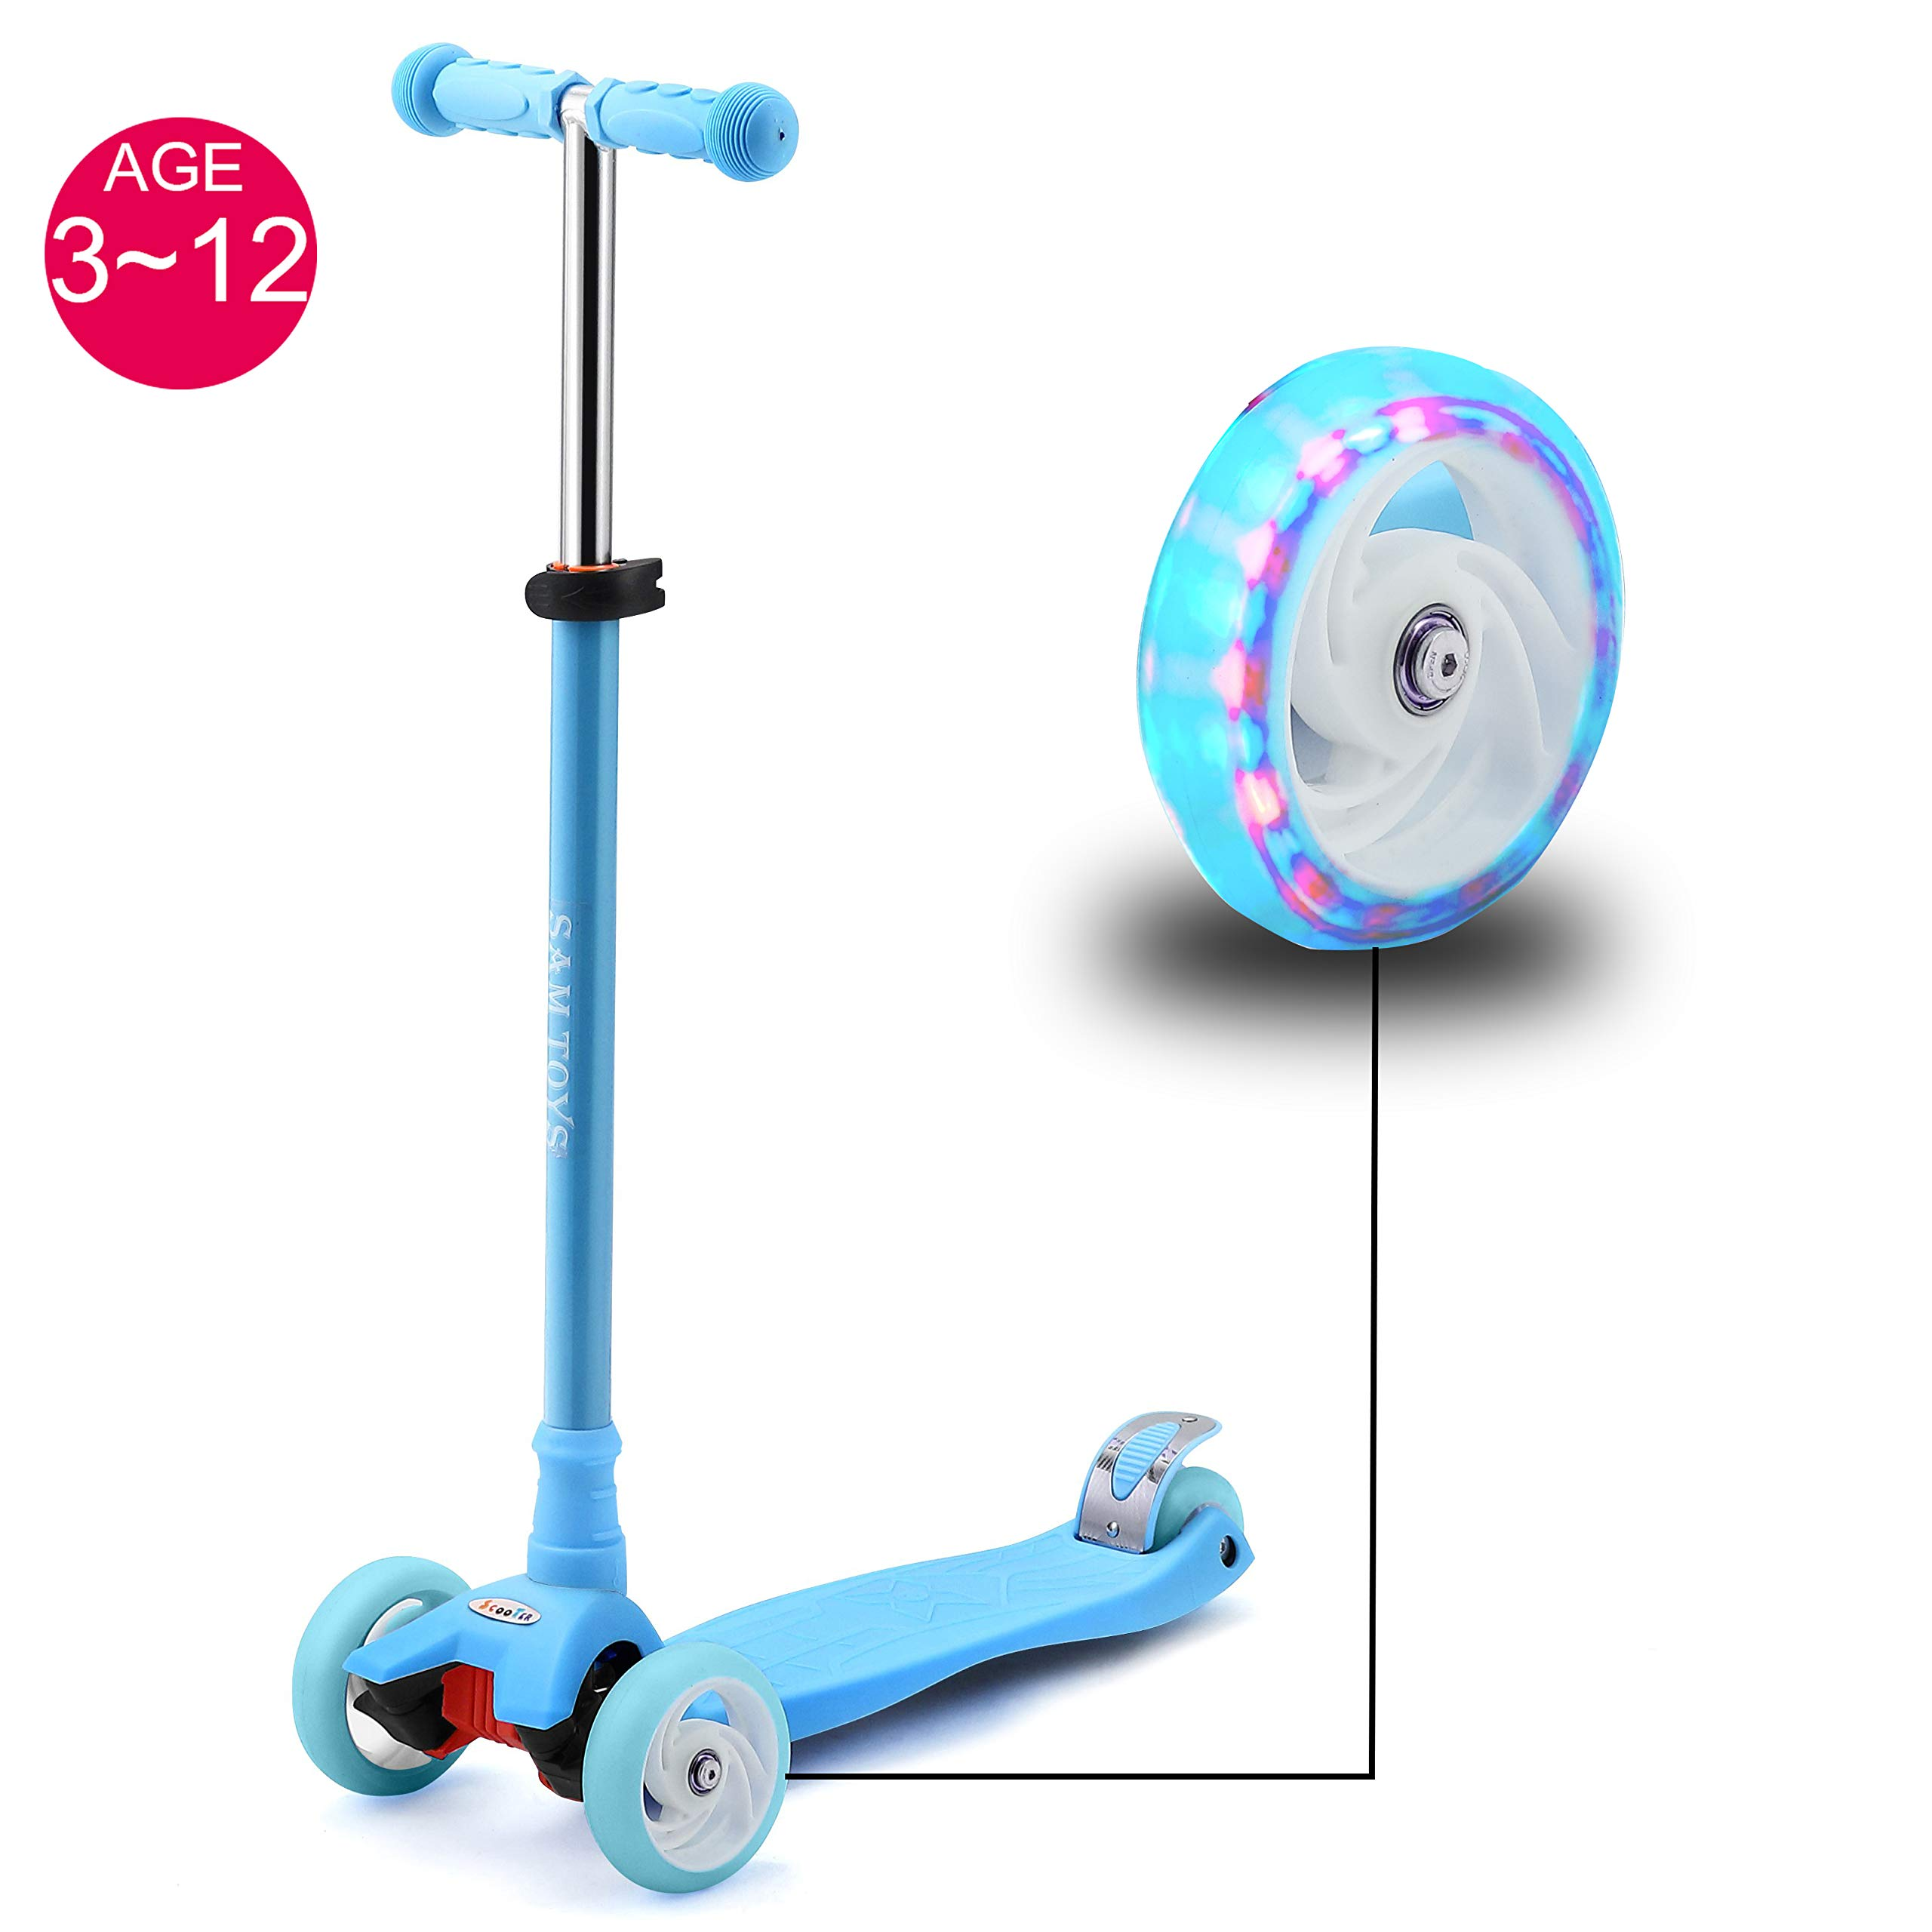 SAMTOYS Scooter for Kids - 3 Wheels Adjustable Kick Scooter with LED Light Up Jelly Wheels,for Girls Boys 3 to 12 Years Old (Blue)